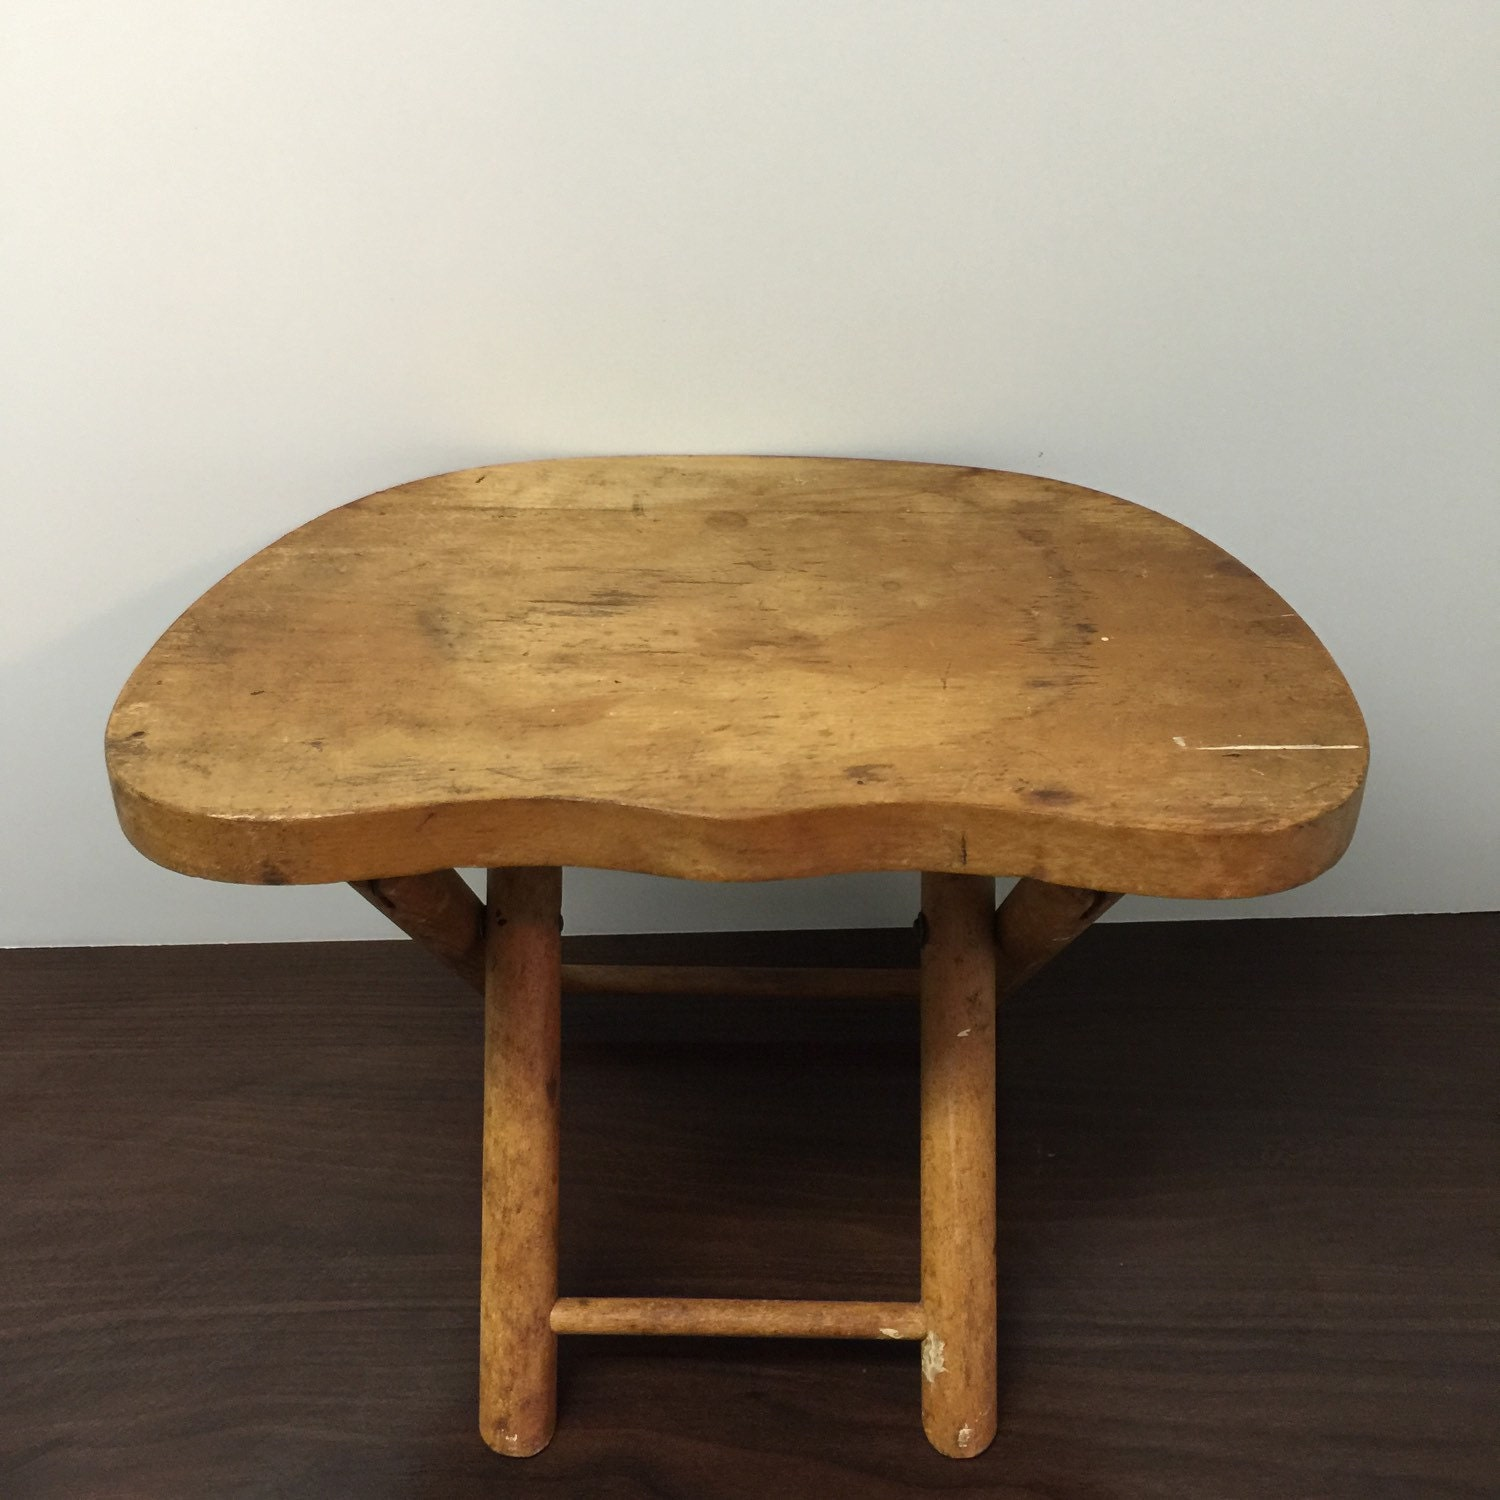 Antique Nevco Step Stool Wood Stool Plant Stand Foot